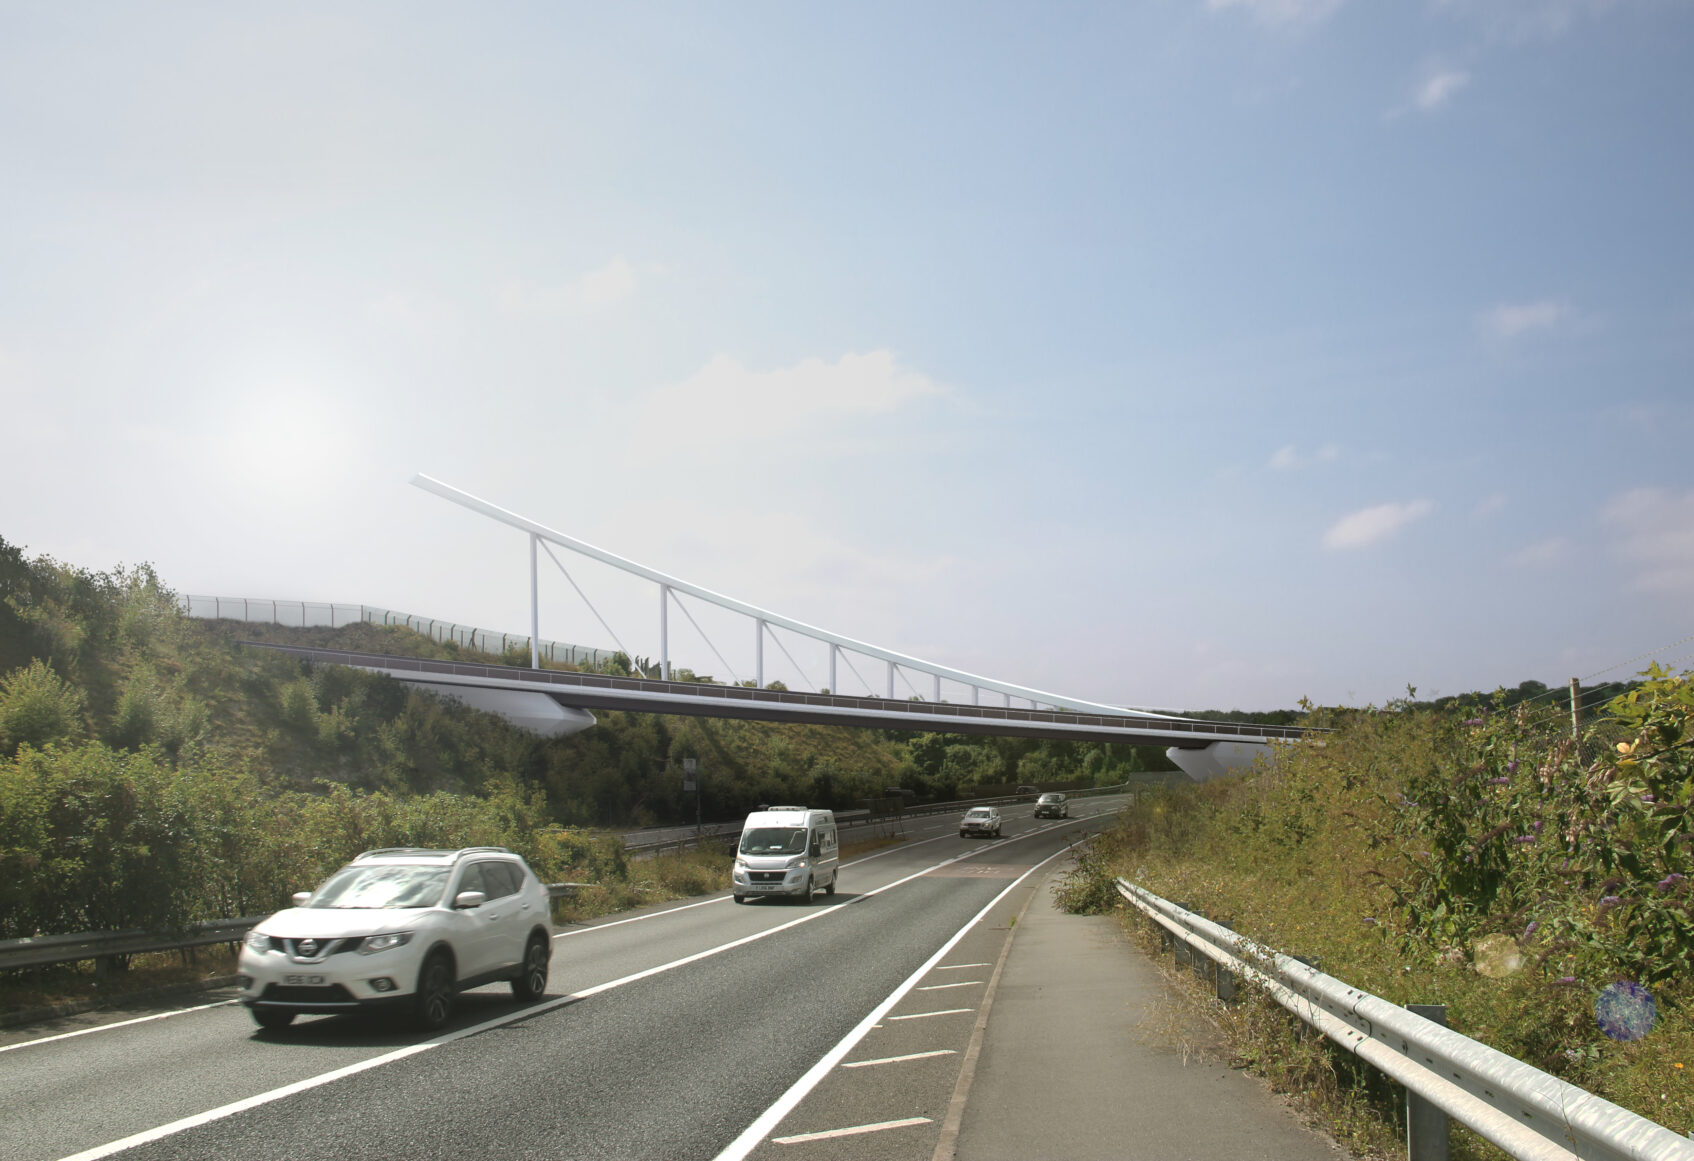 Visualisation of completed Luton footbridge from side of motorway with cars travelling underneath